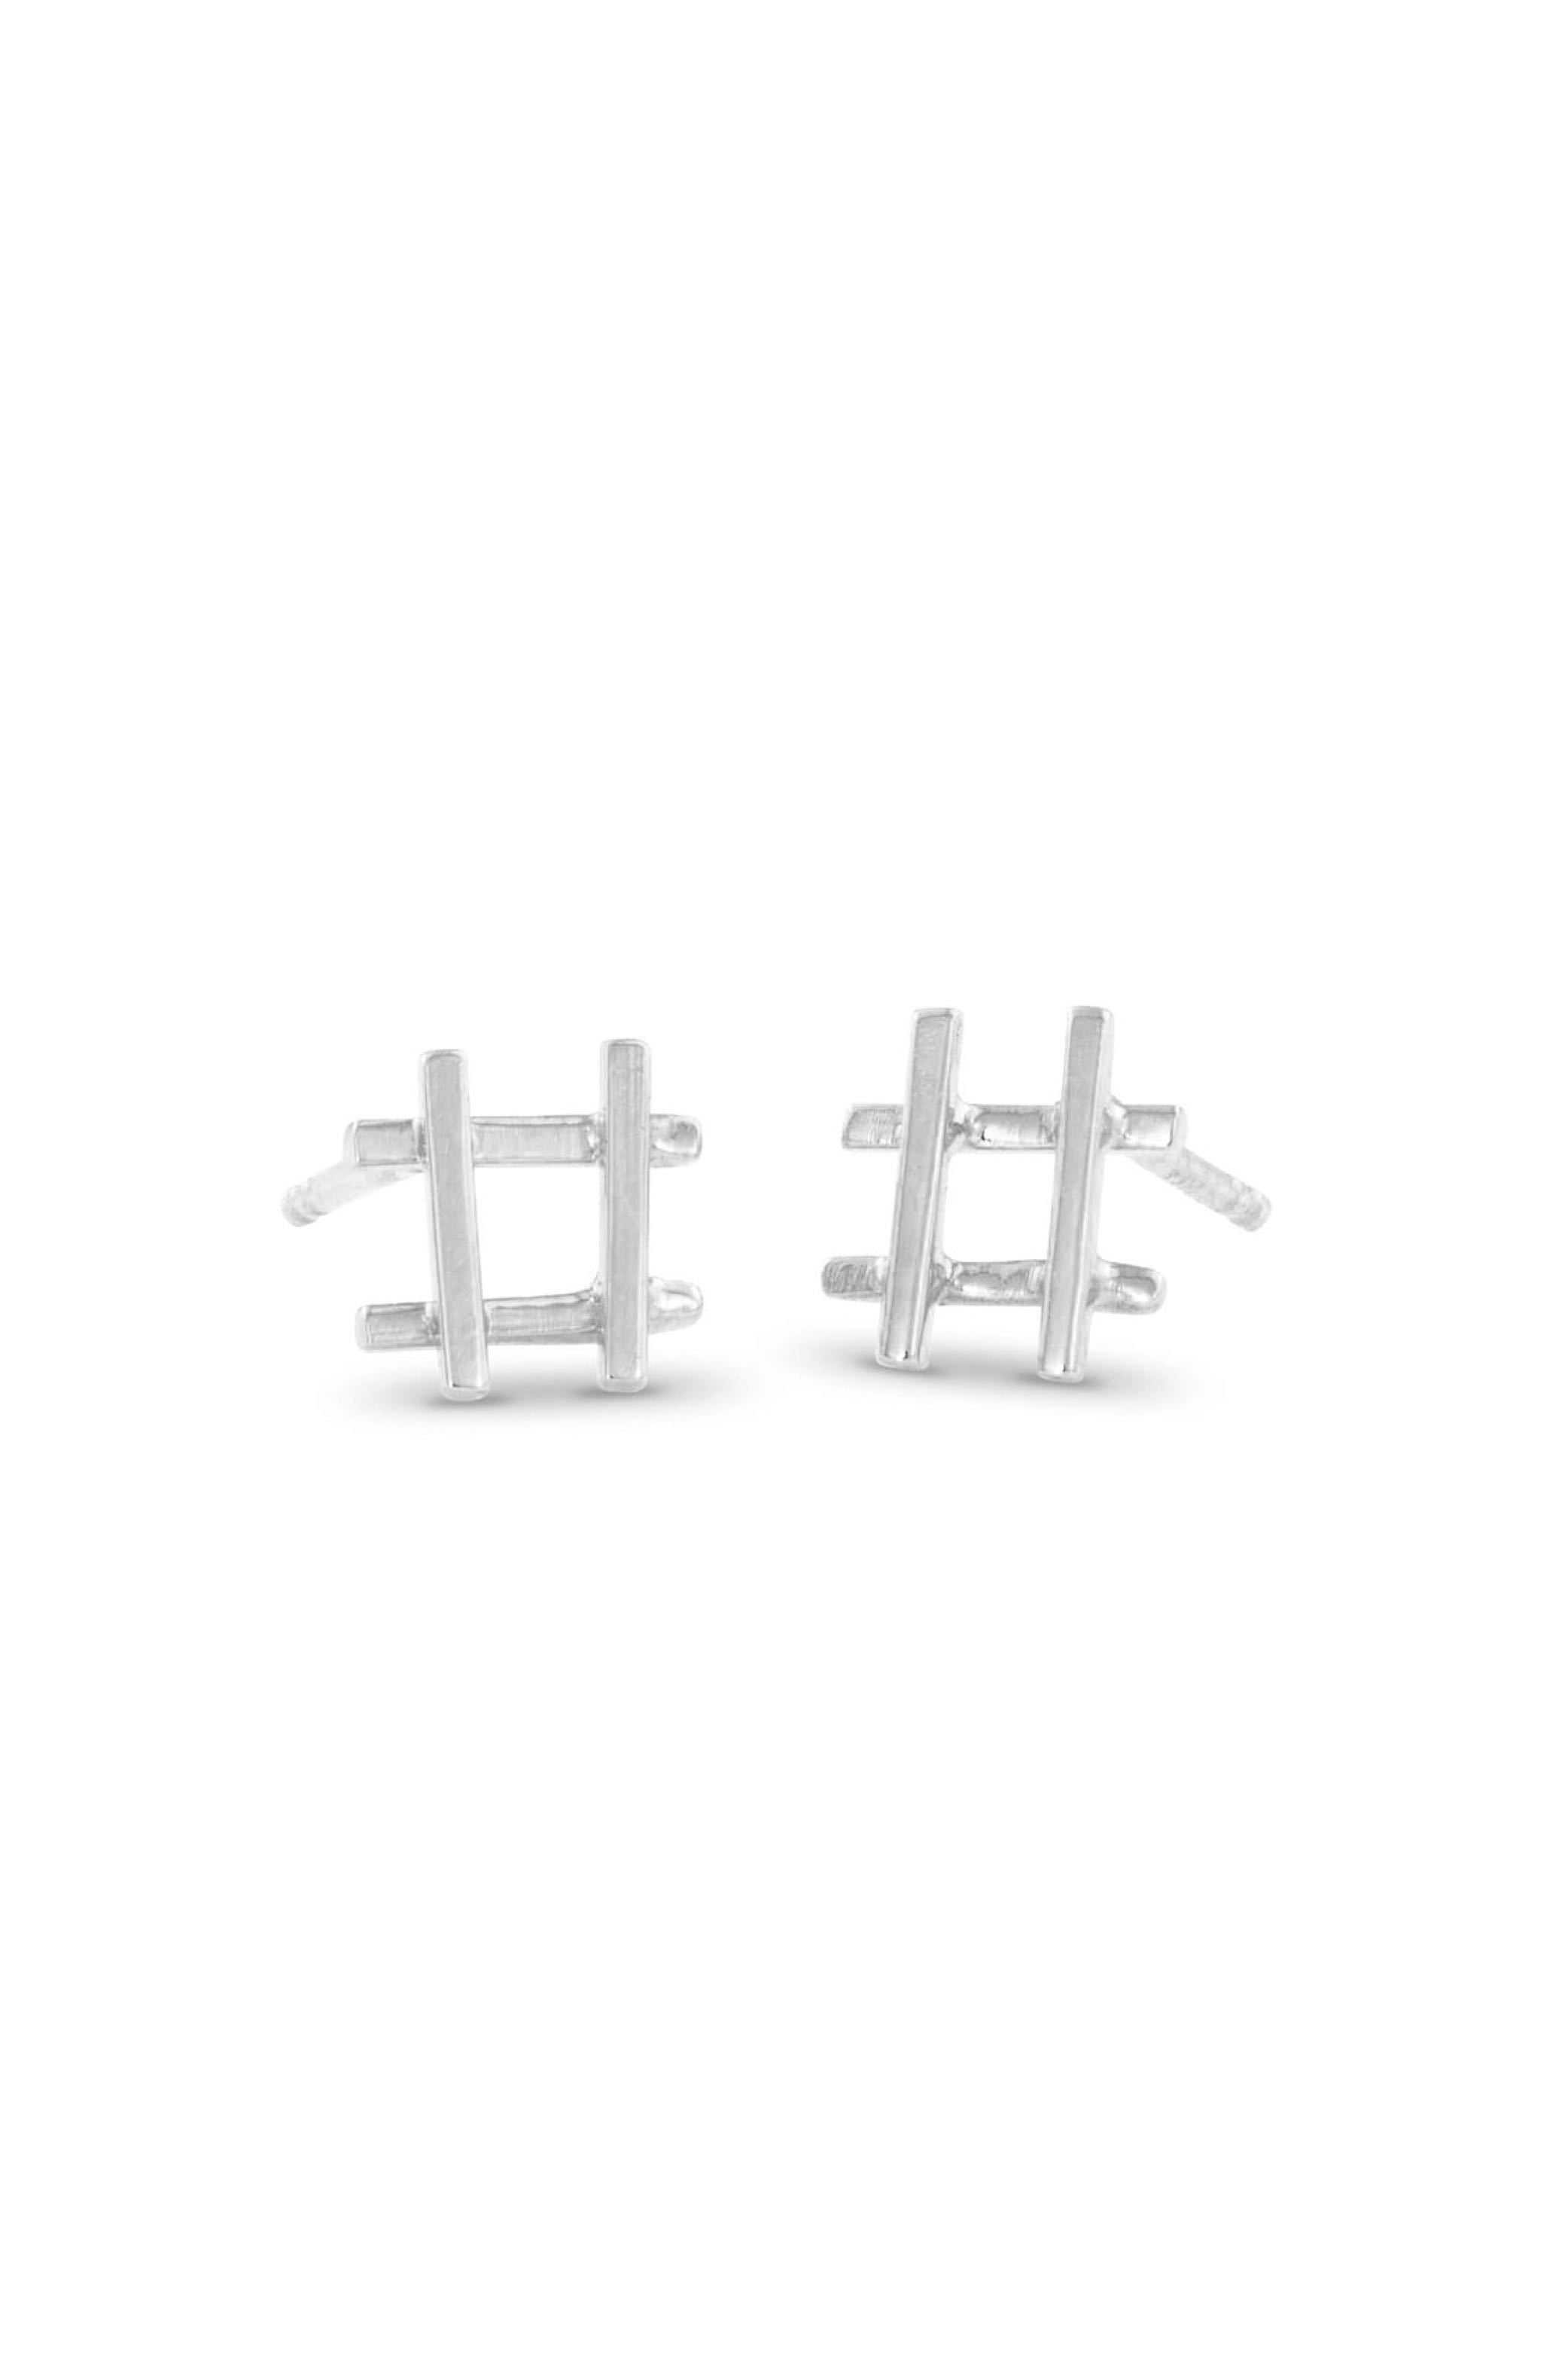 Silver Hashtag Earrings